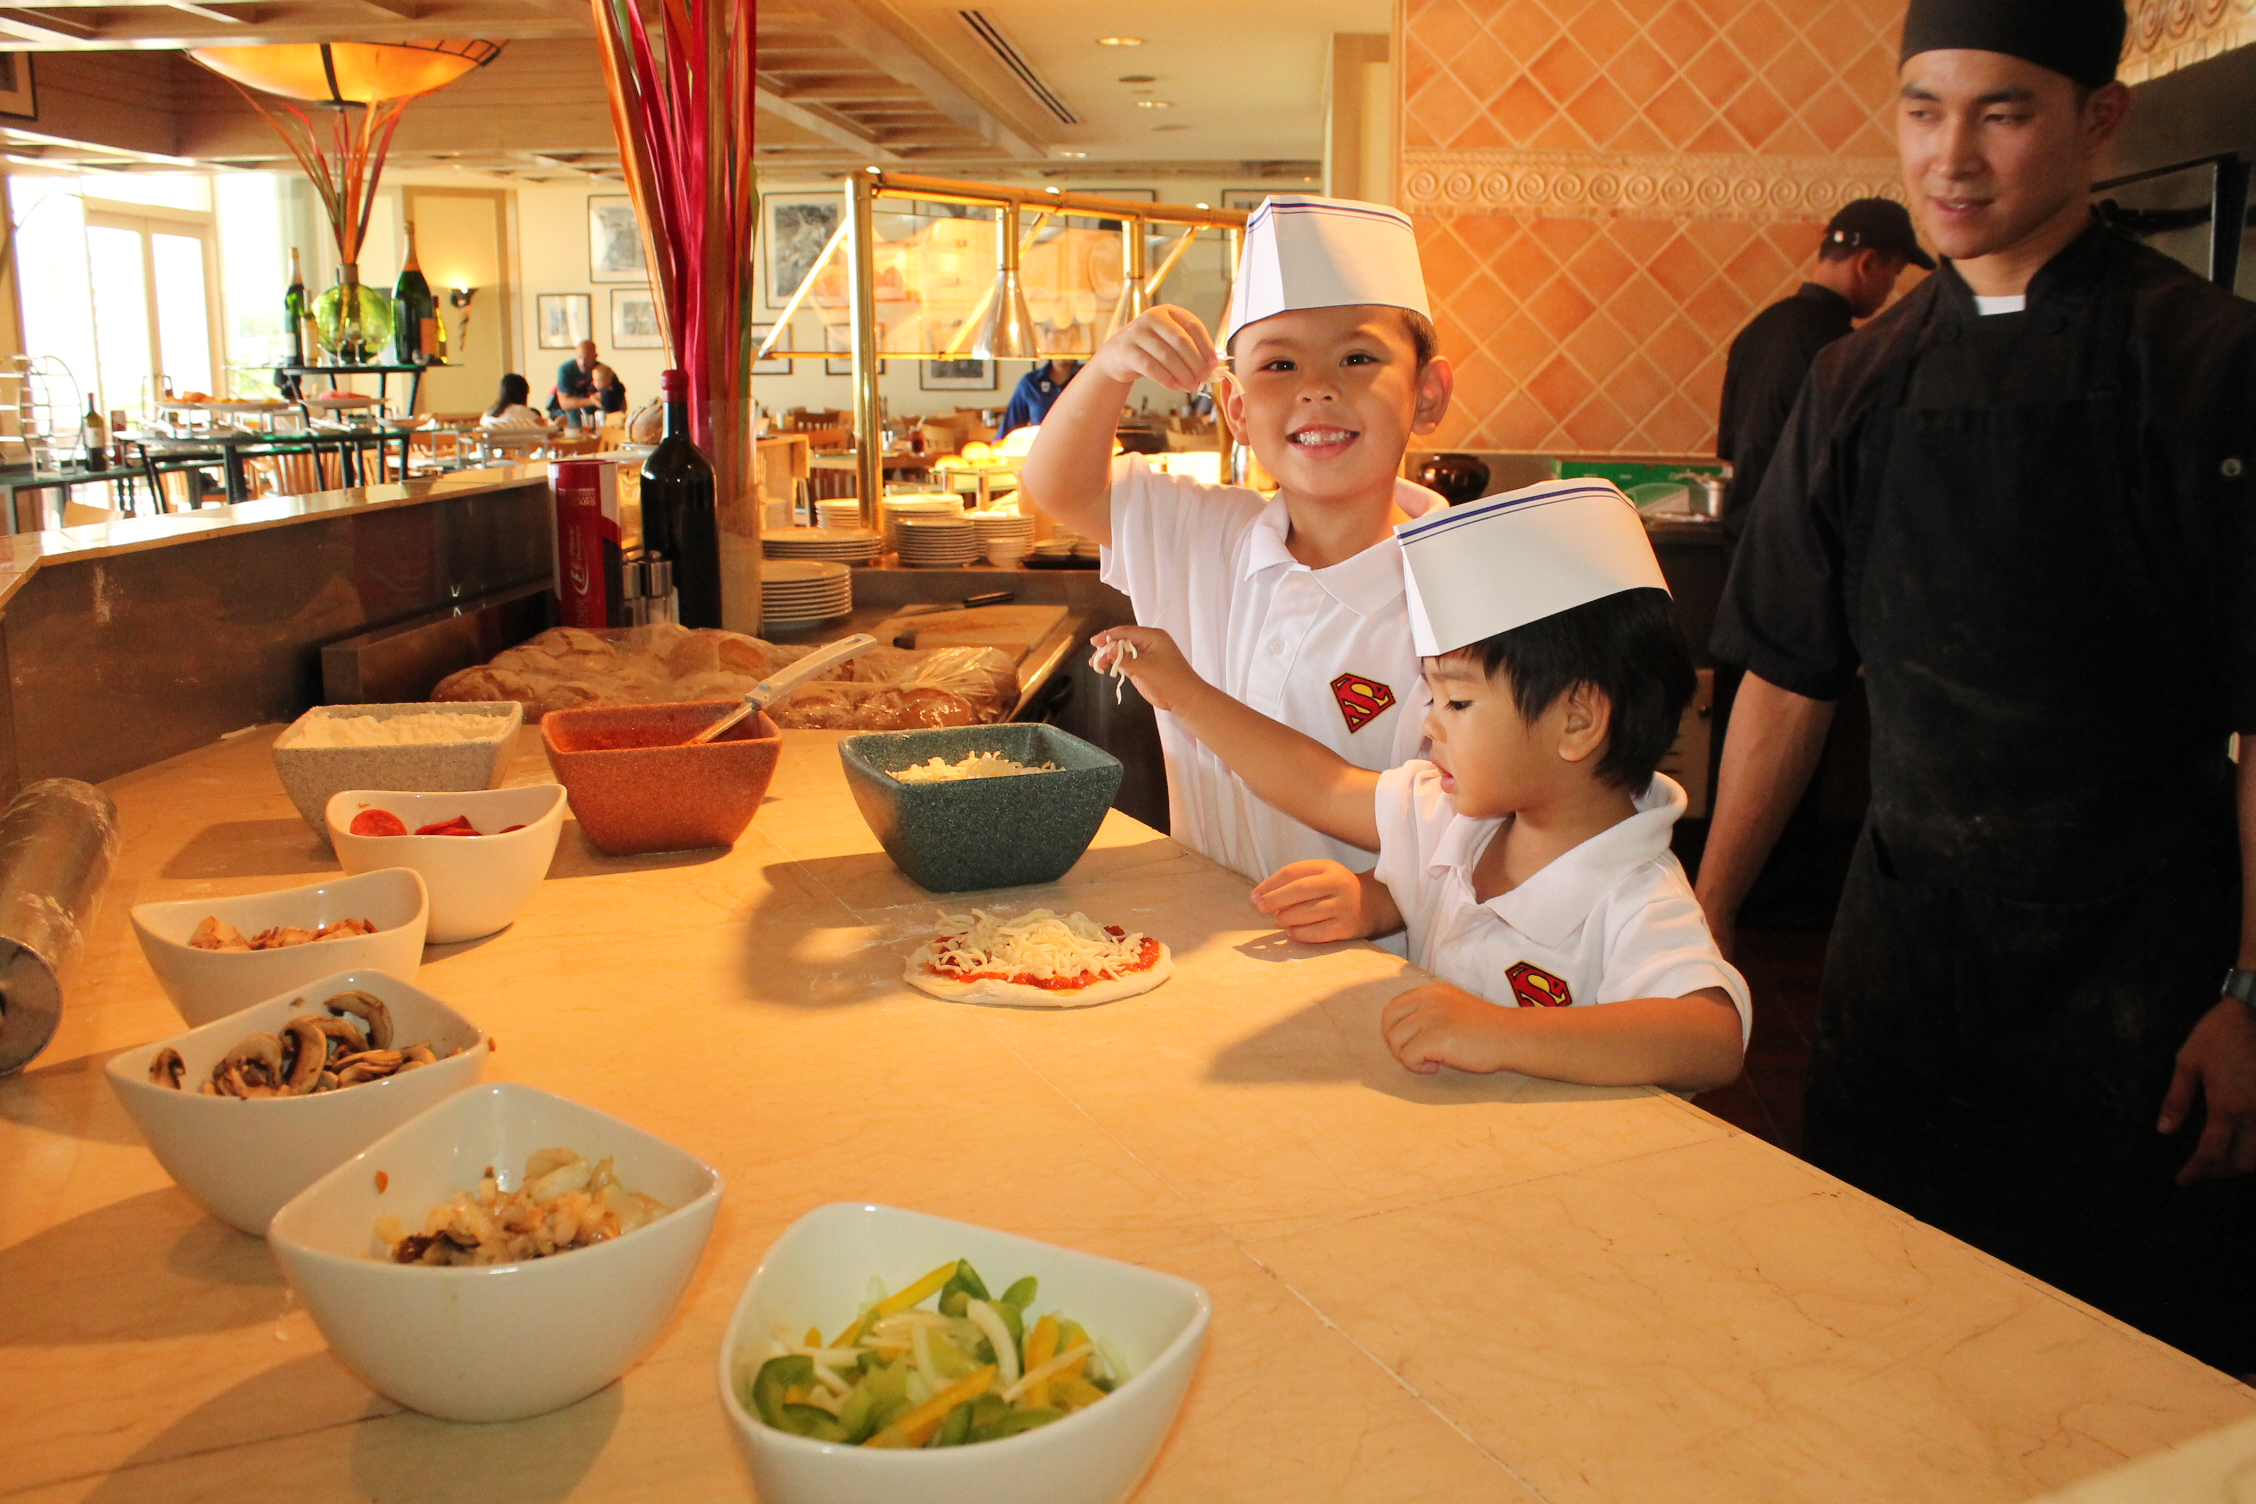 A fresh experience for kid's making own pasta